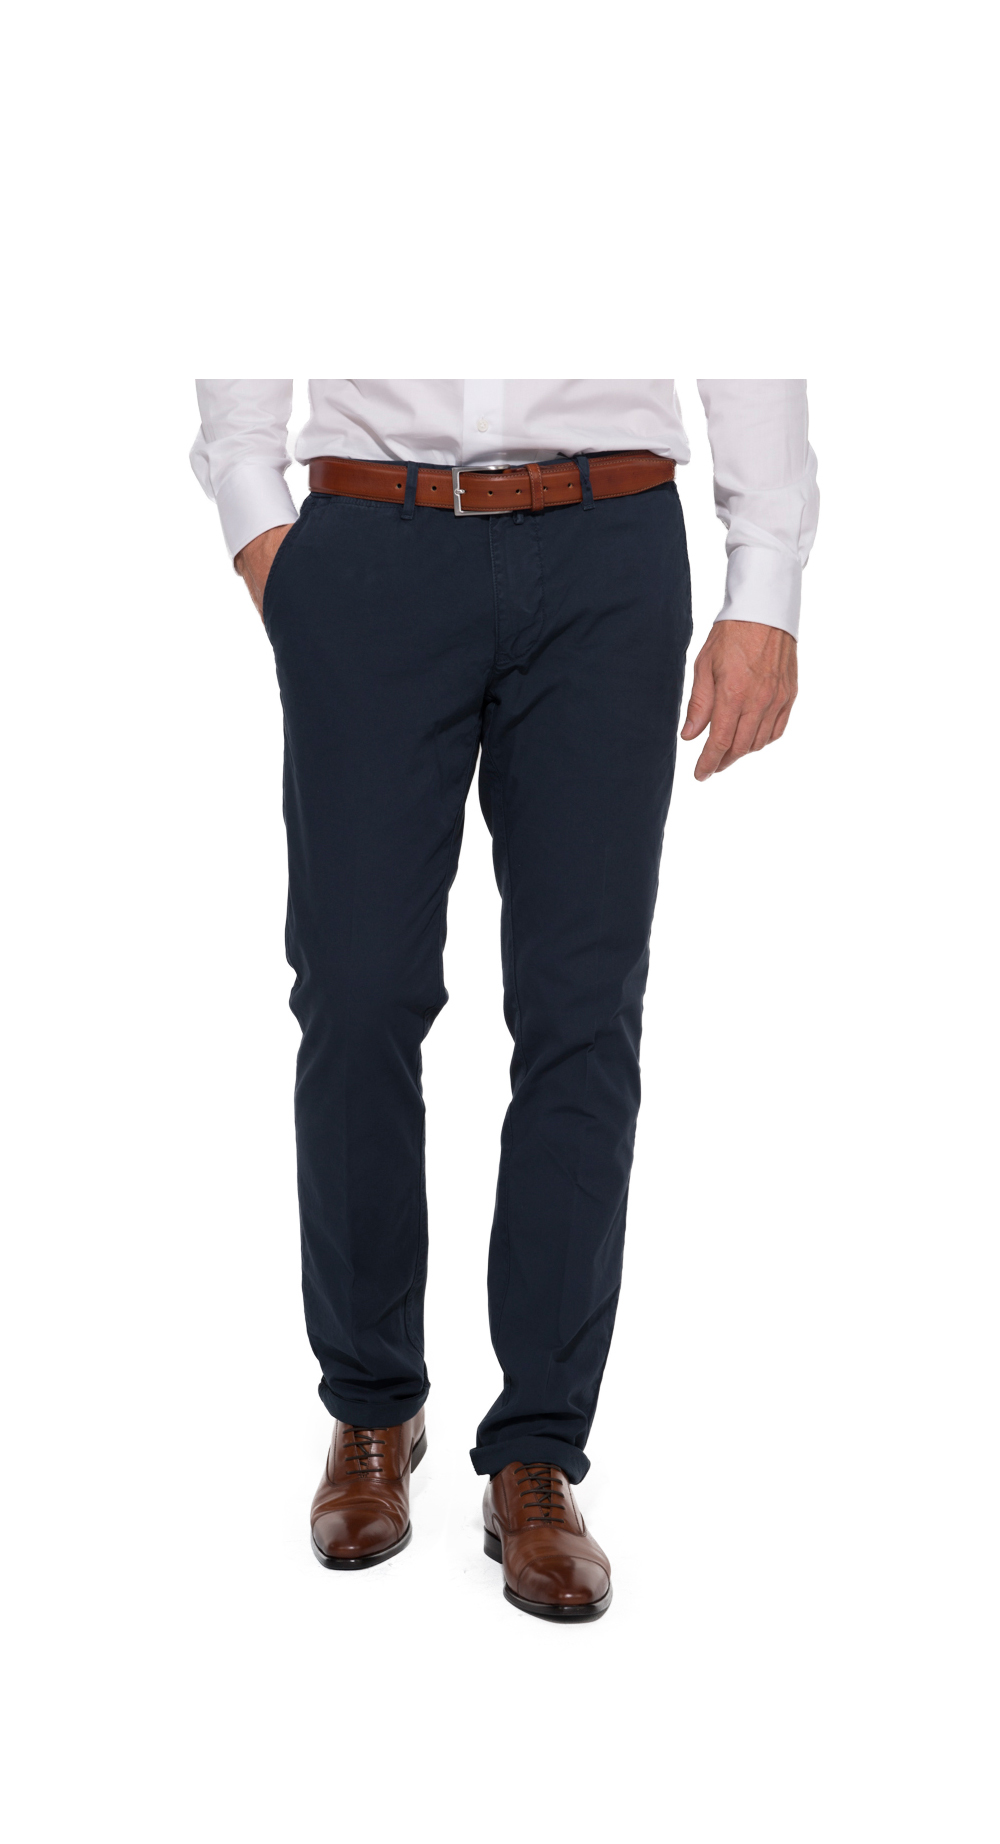 Pionier chino stretch grote maat donkerblauw model Robert